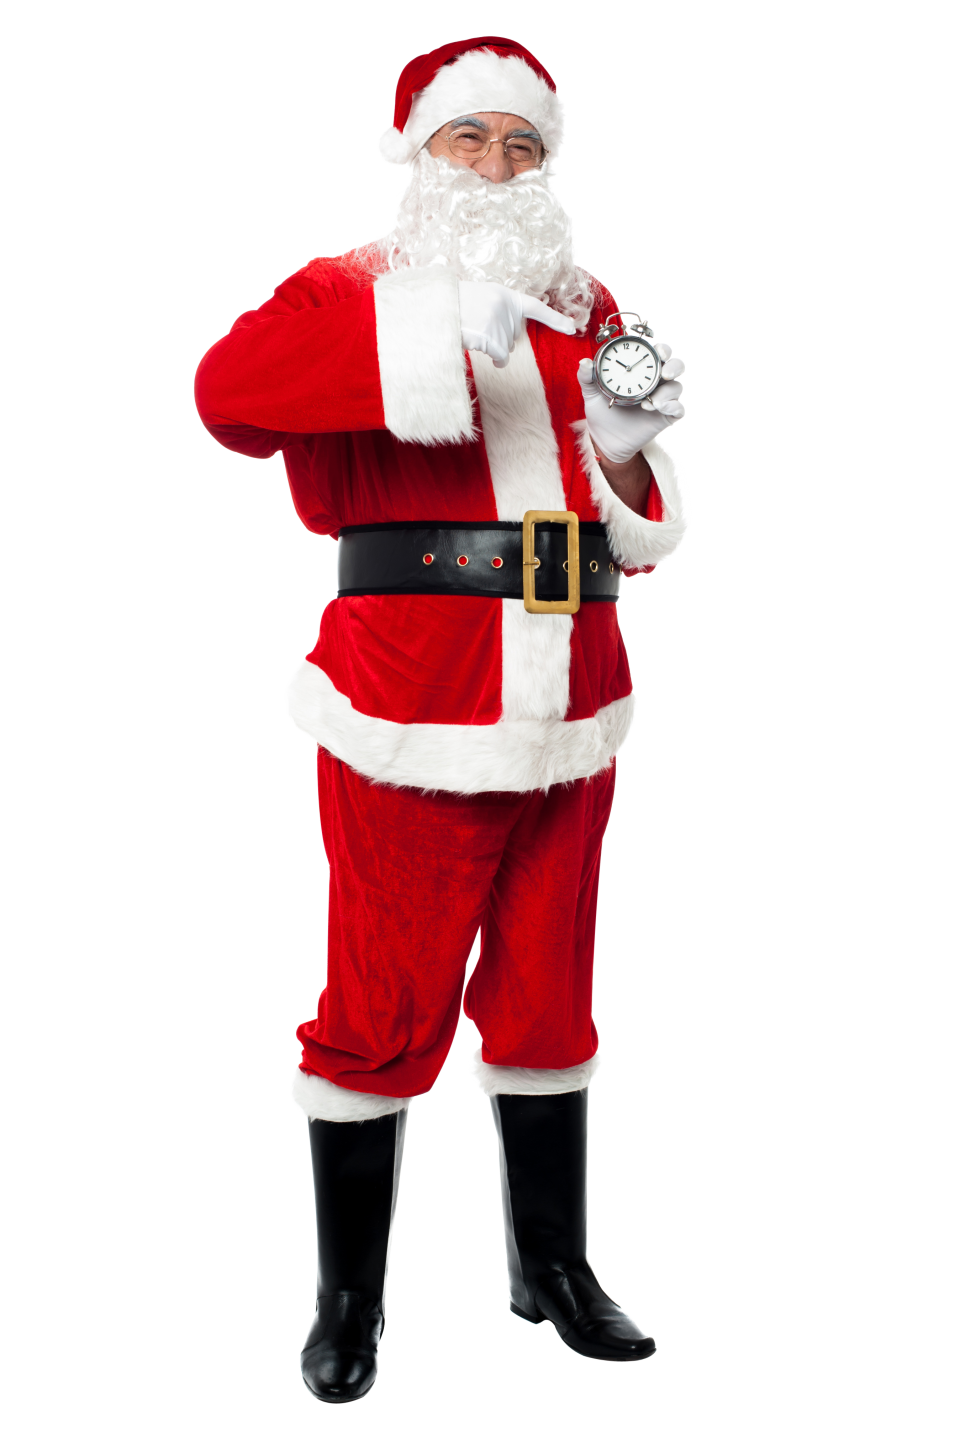 Santa Claus Pointing on Clock PNG Image